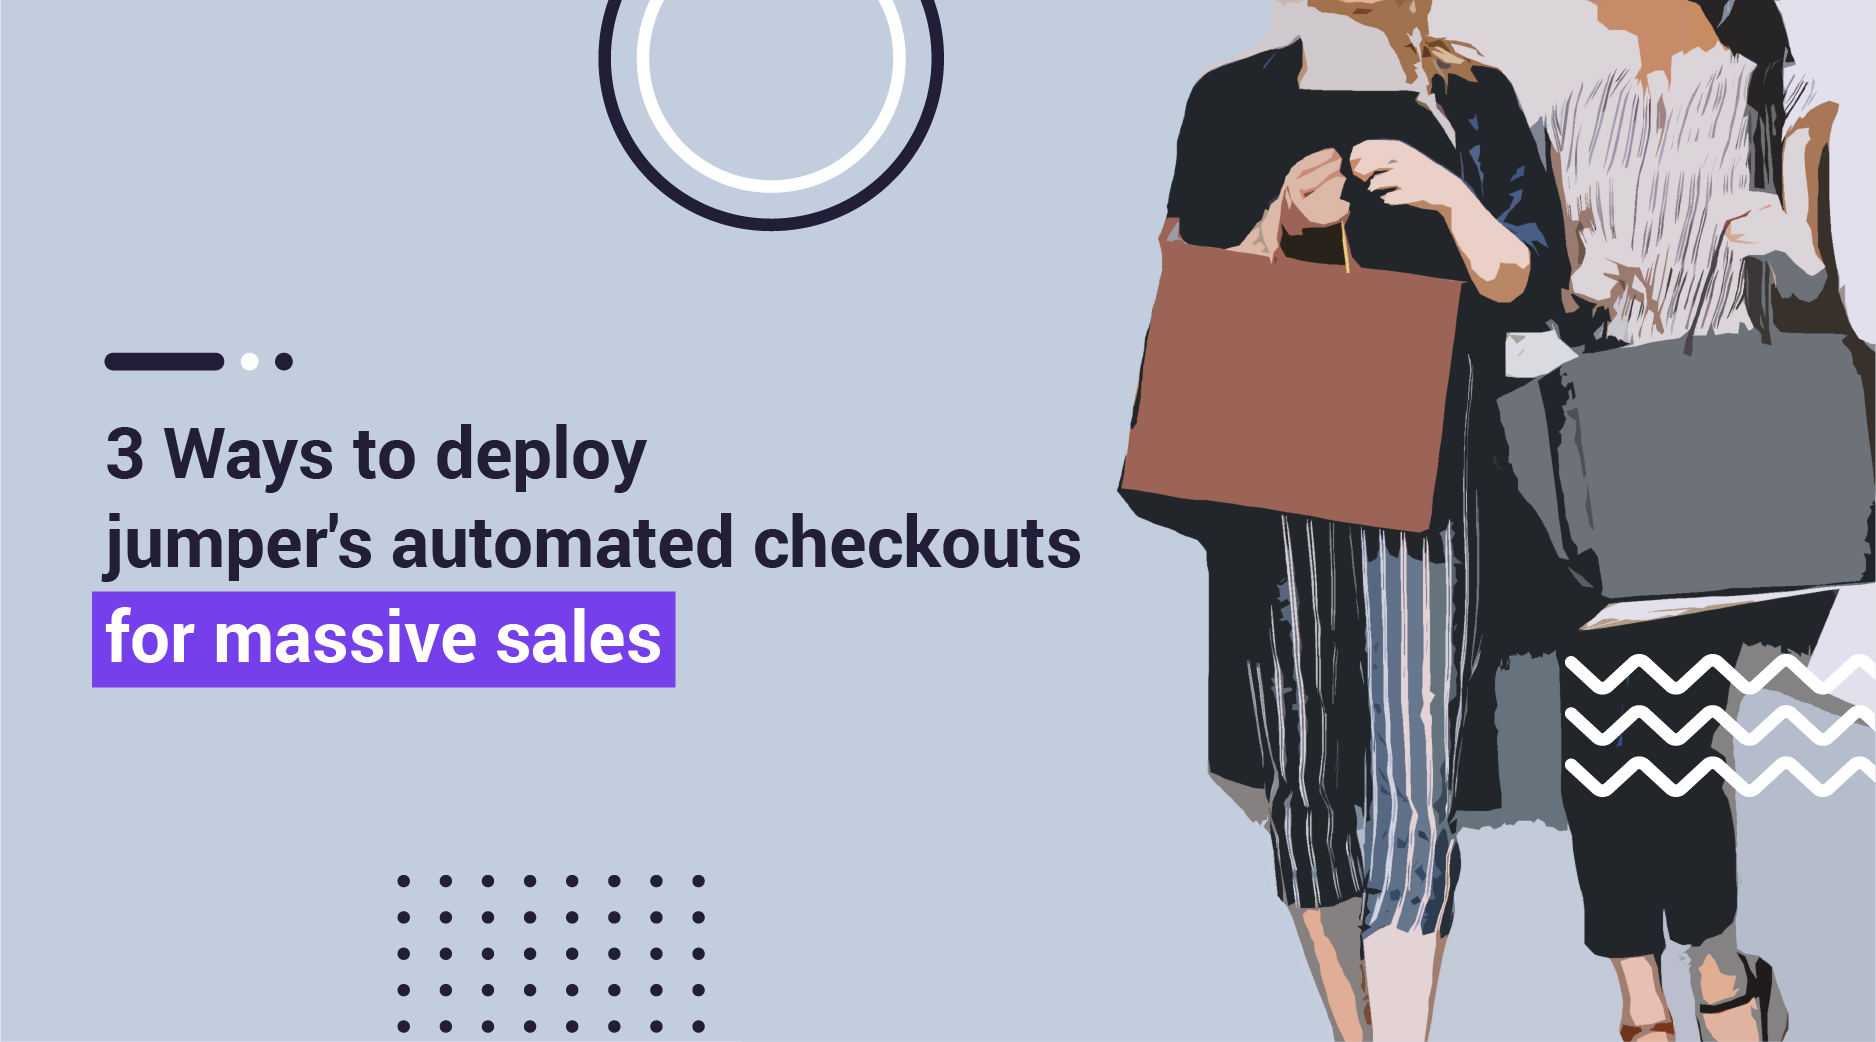 3 Ways to Deploy jumper's Automated Checkouts For Massive Sales